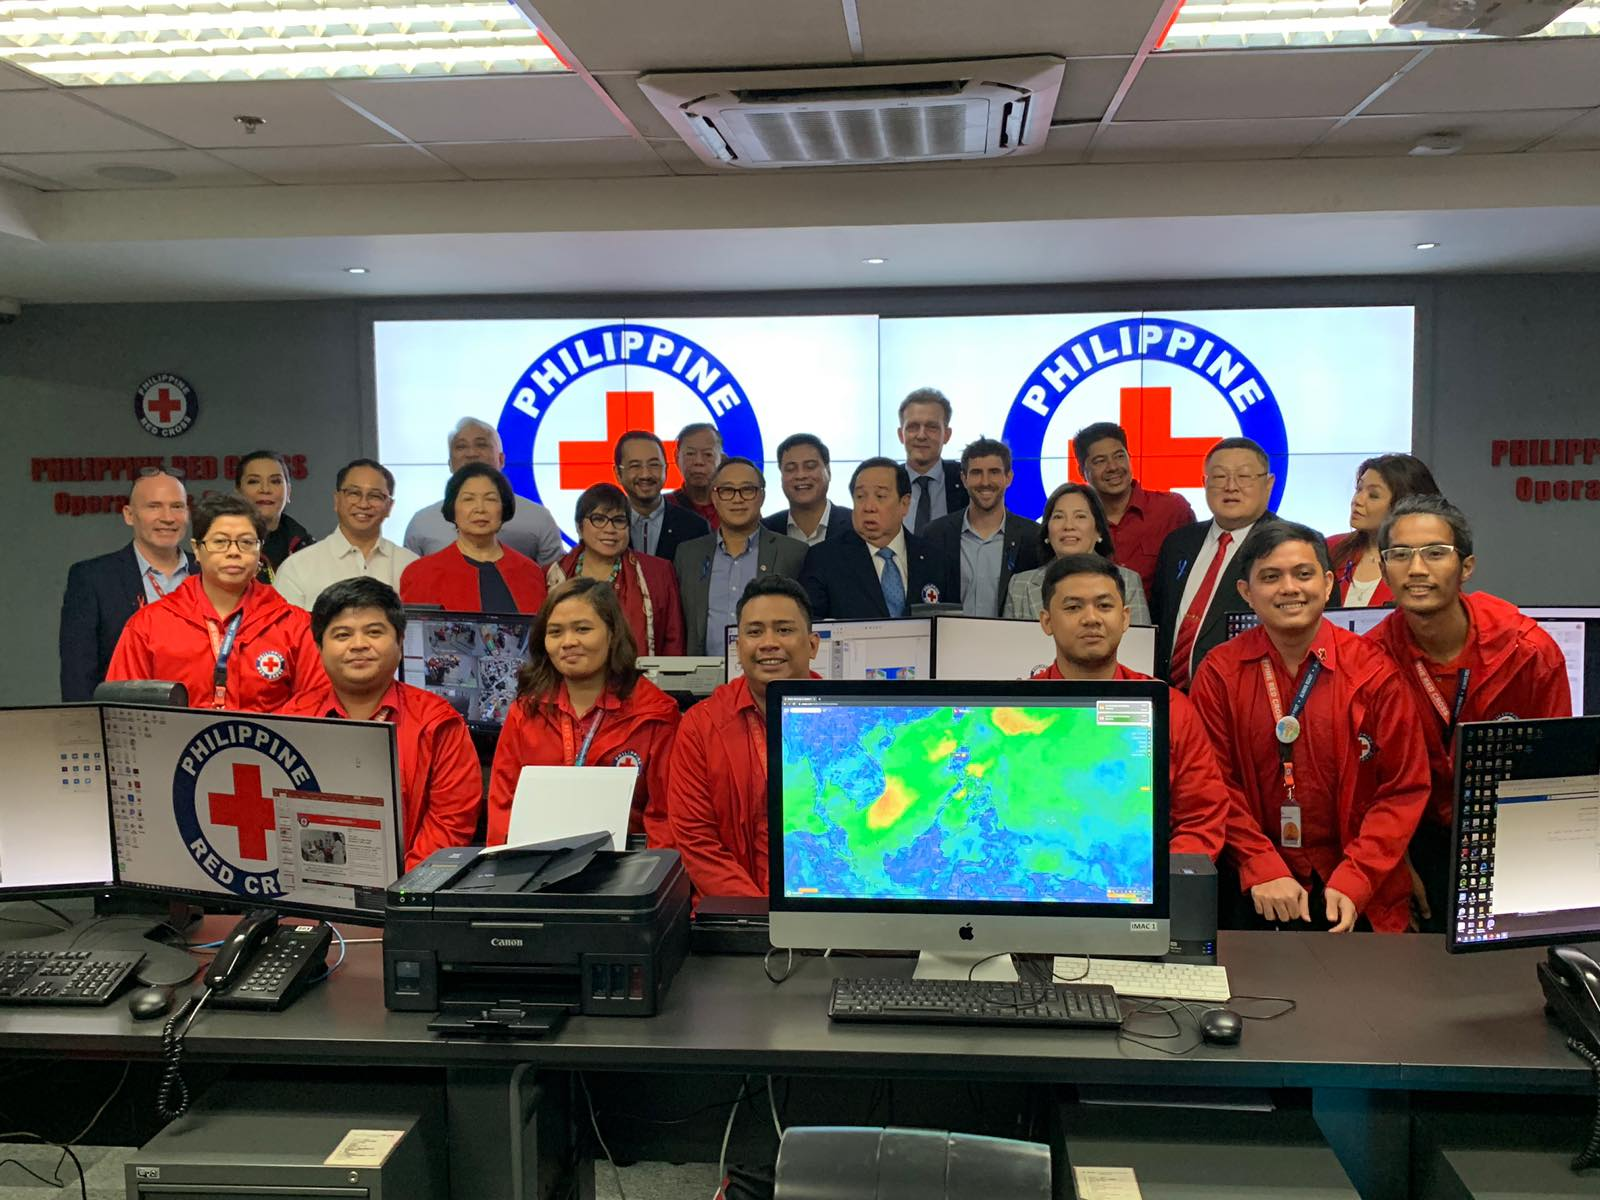 Philippine Red Cross Chairman and CEO Senator Richard Gordon asked the Red Cross volunteers to go in front to be acknowledged for their contribution to the organization's mission.